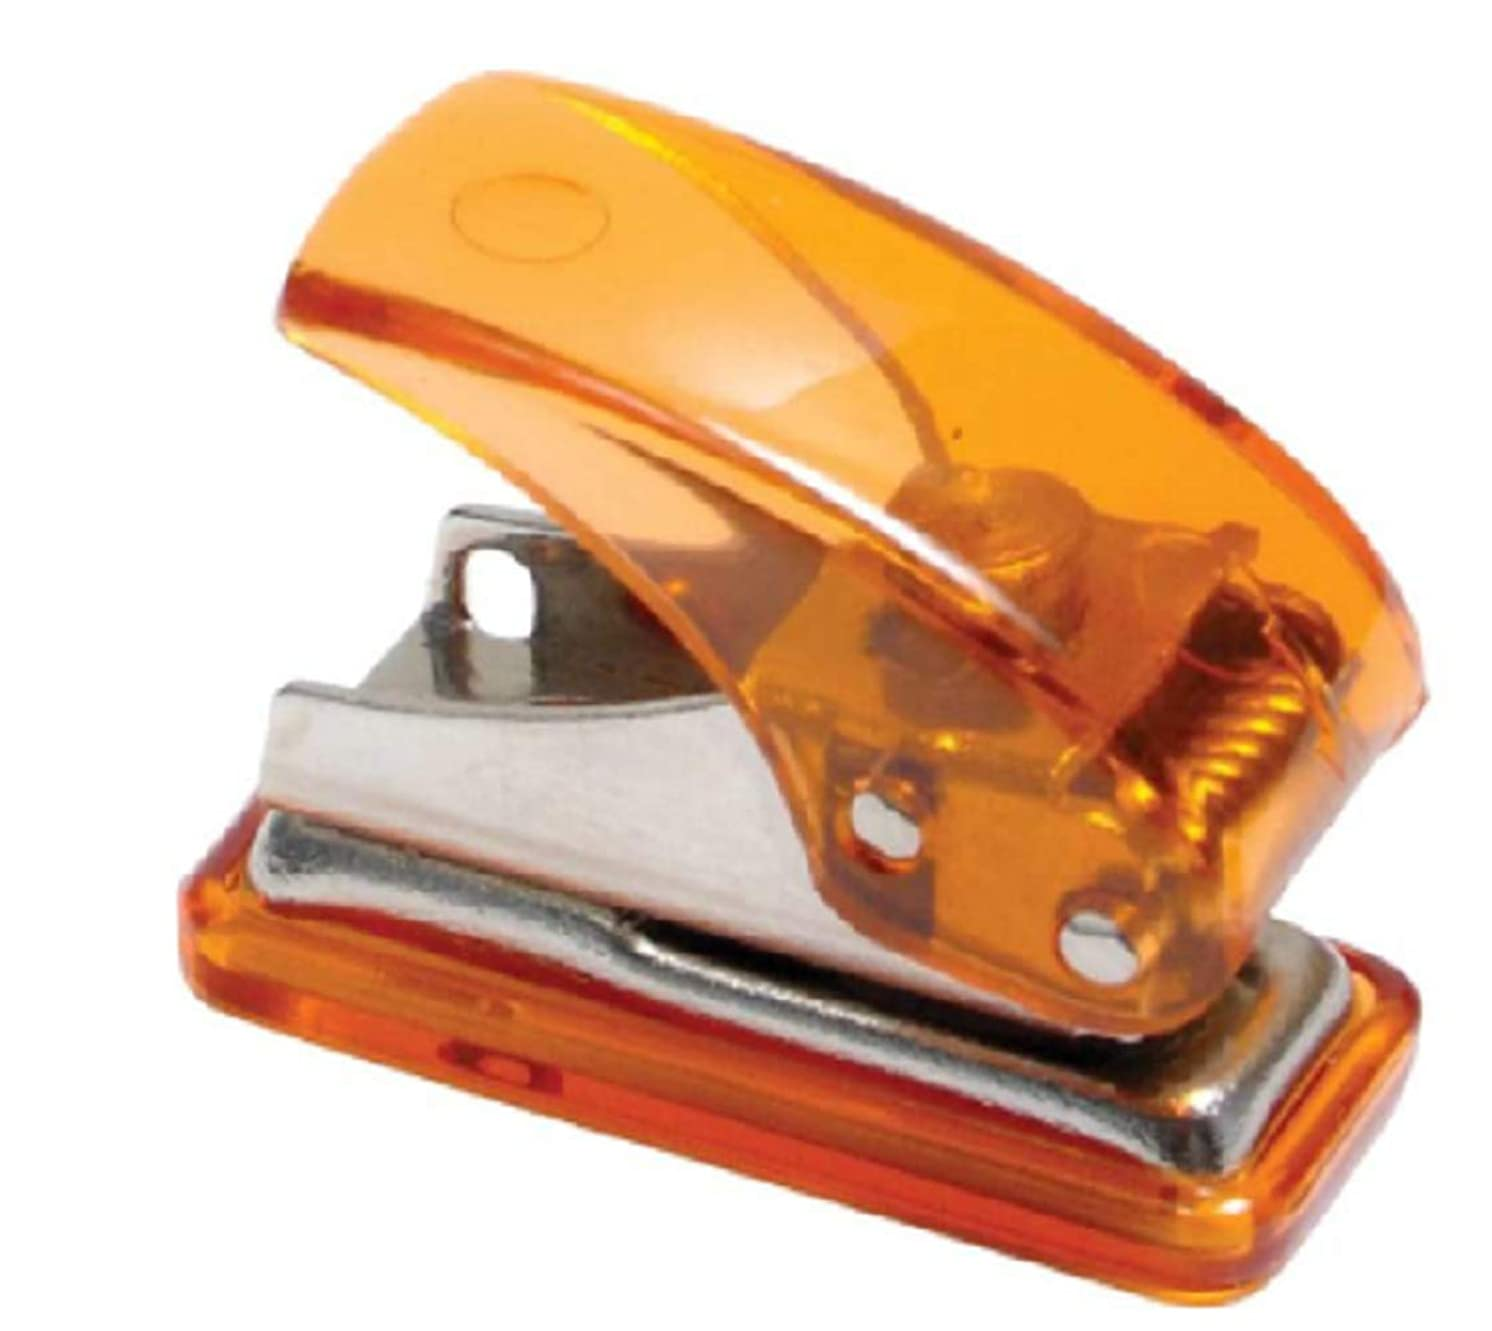 Baumgartens 20270 Single Hole Punch, Mini, 3.5 X 3 X 2 Inches, Assorted, Orders Will Contain Only 1 Single Hole Punch